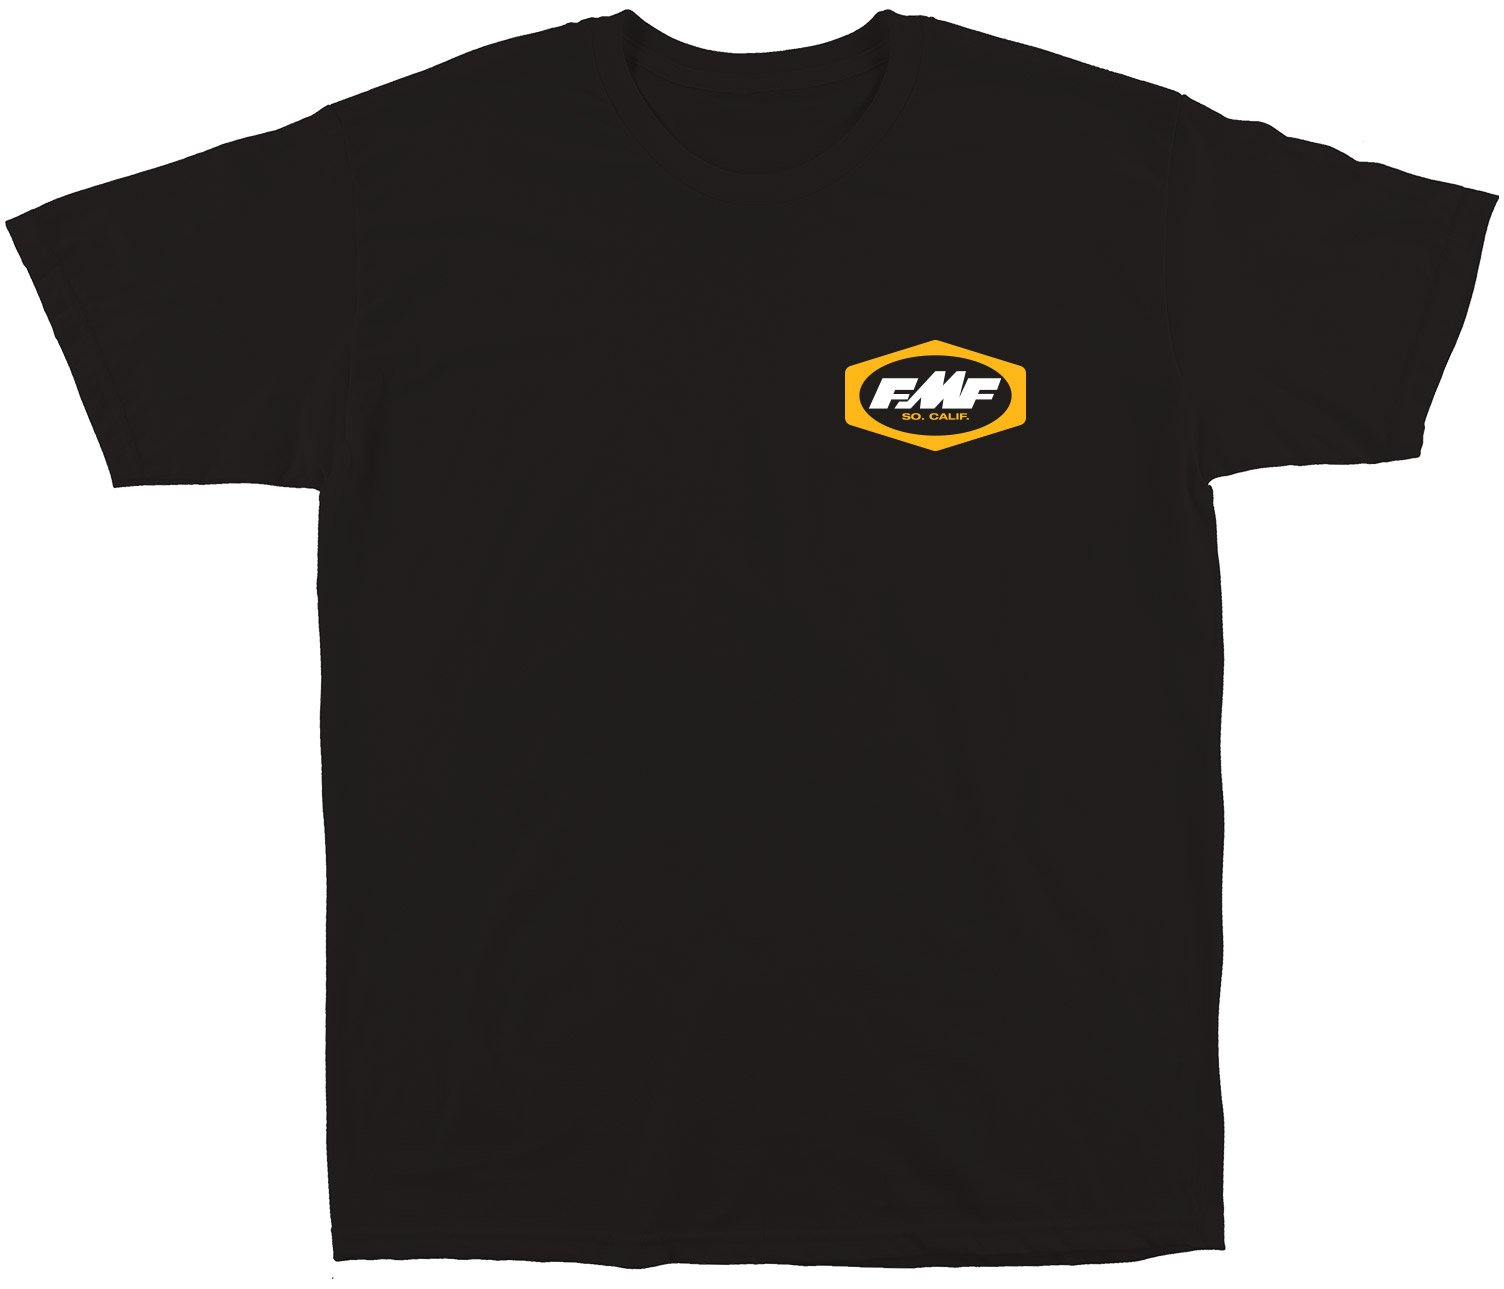 FMF Archives - DirtRider   MX   Off-Road Gear Reviews   Best Prices 68bfc695cddc